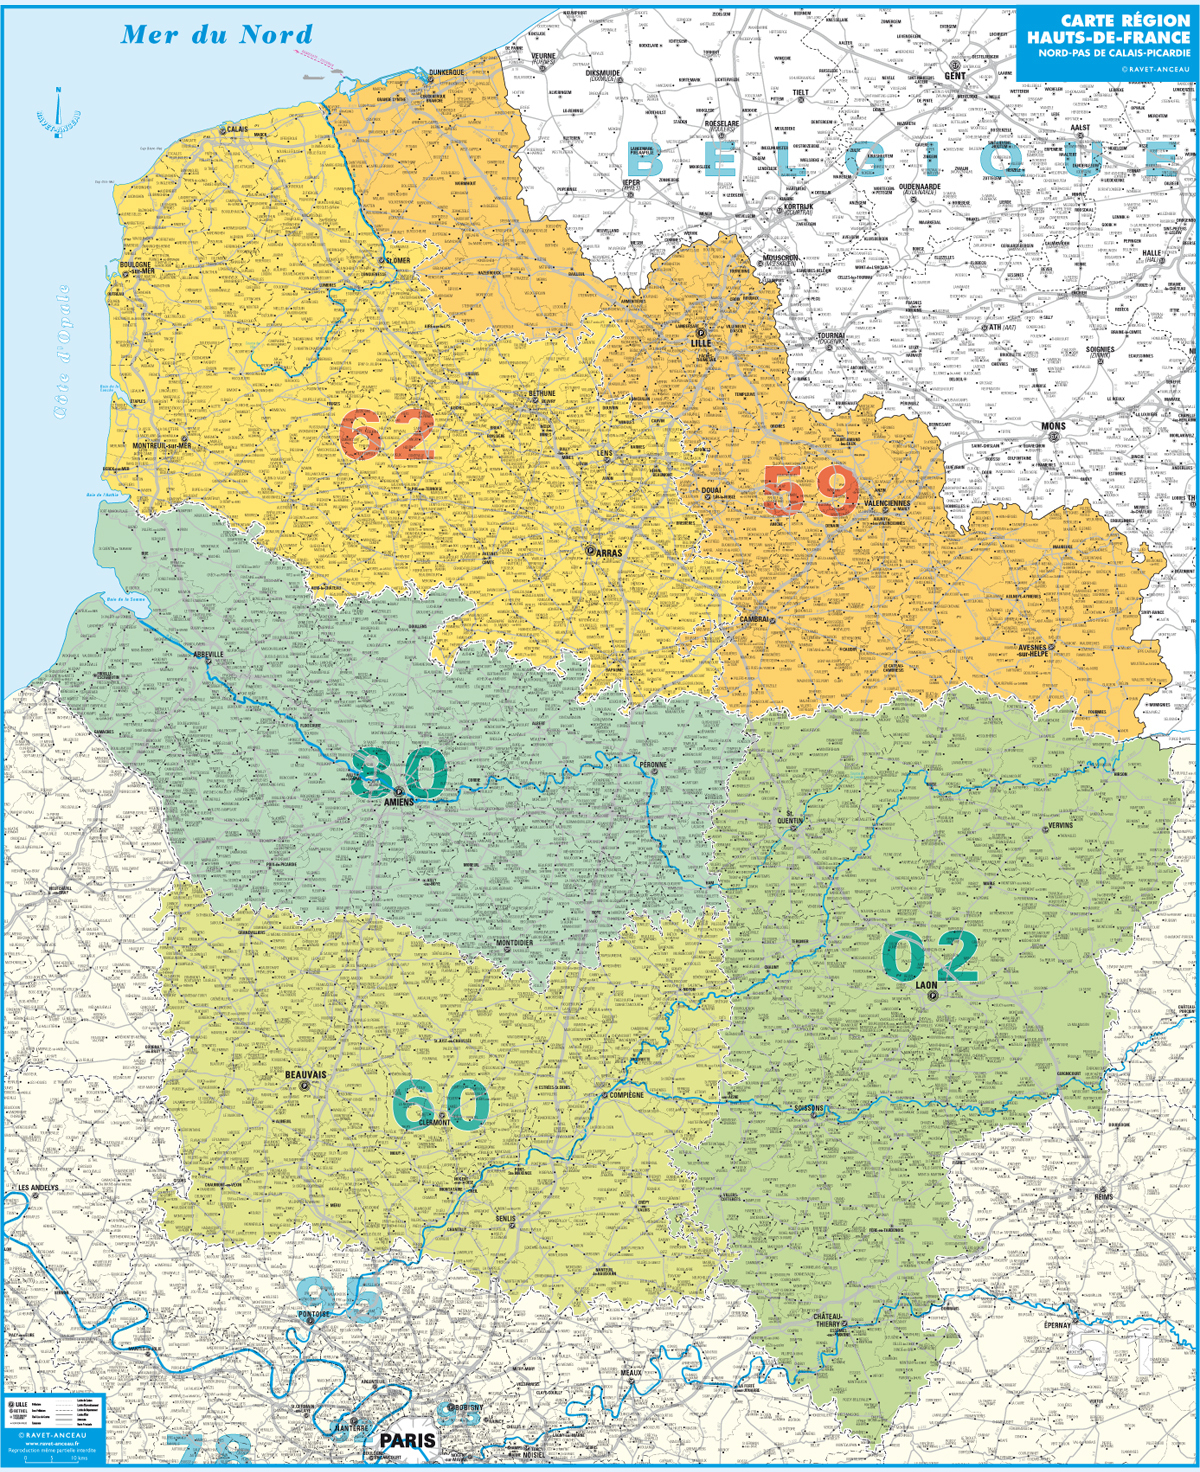 Carte Hauts-De-France tout Carte De La France Région